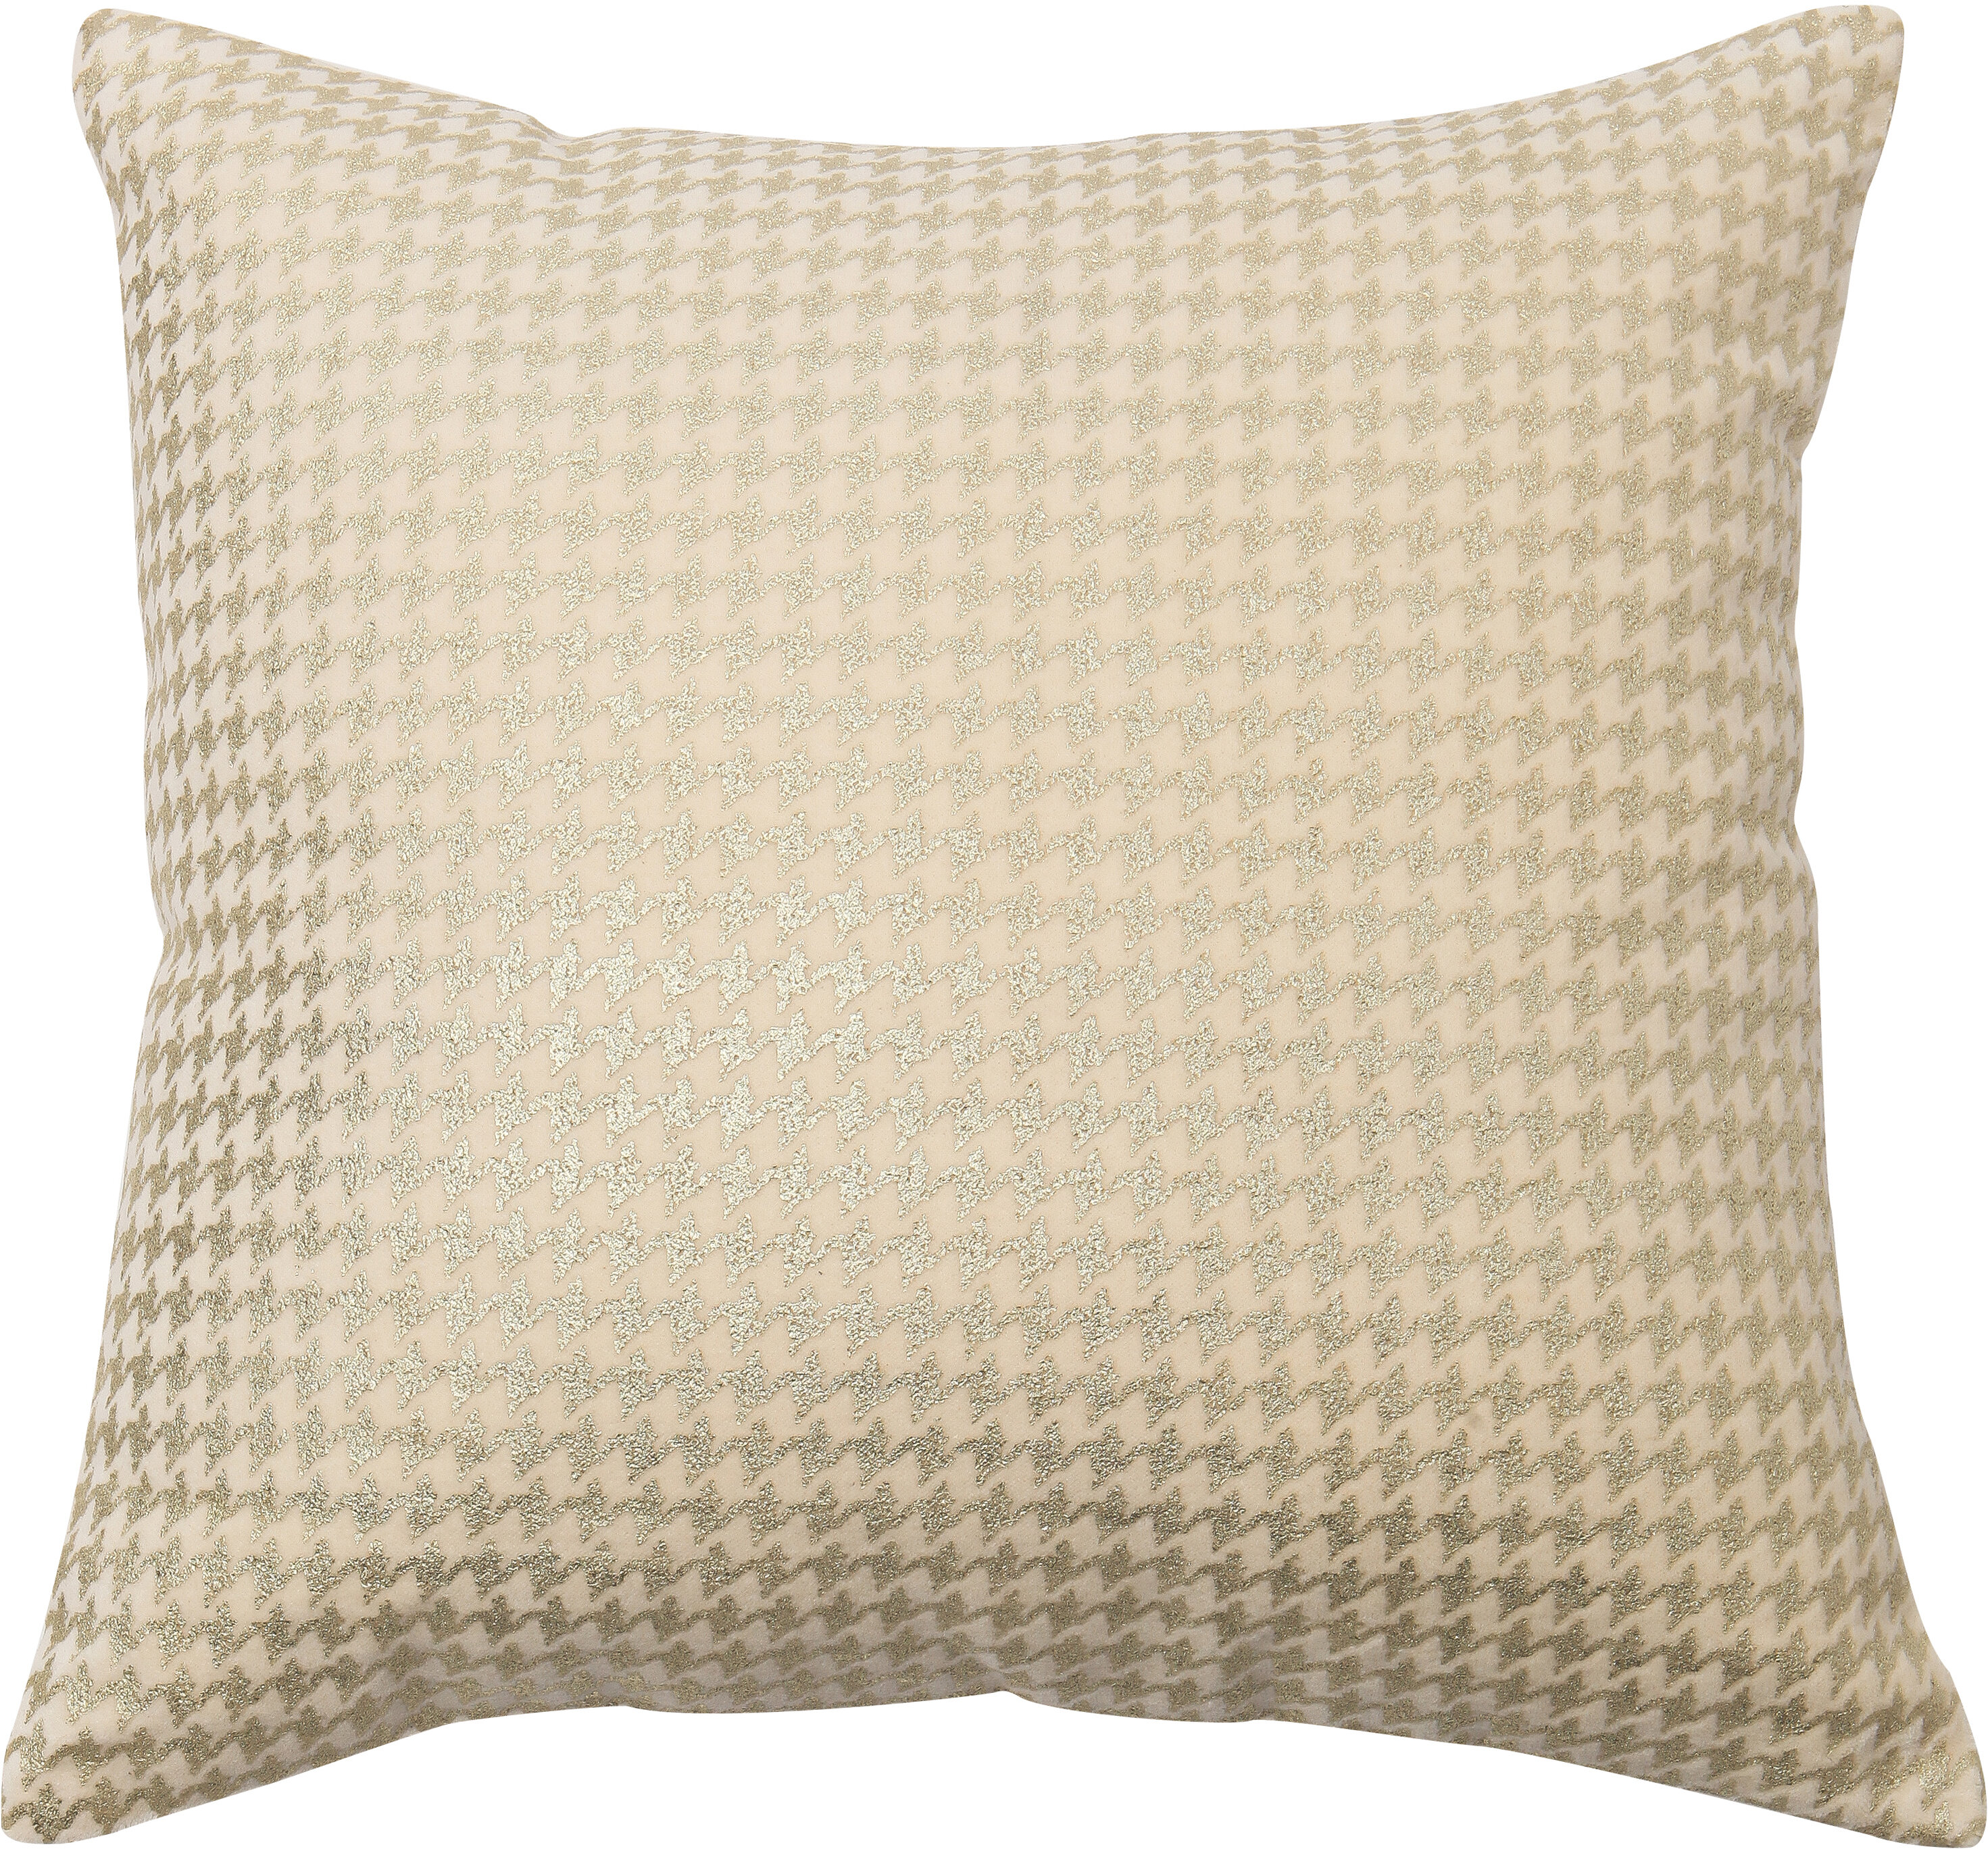 Best Home Fashion, Inc. Houndstooth Throw Pillow Cover | Wayfair